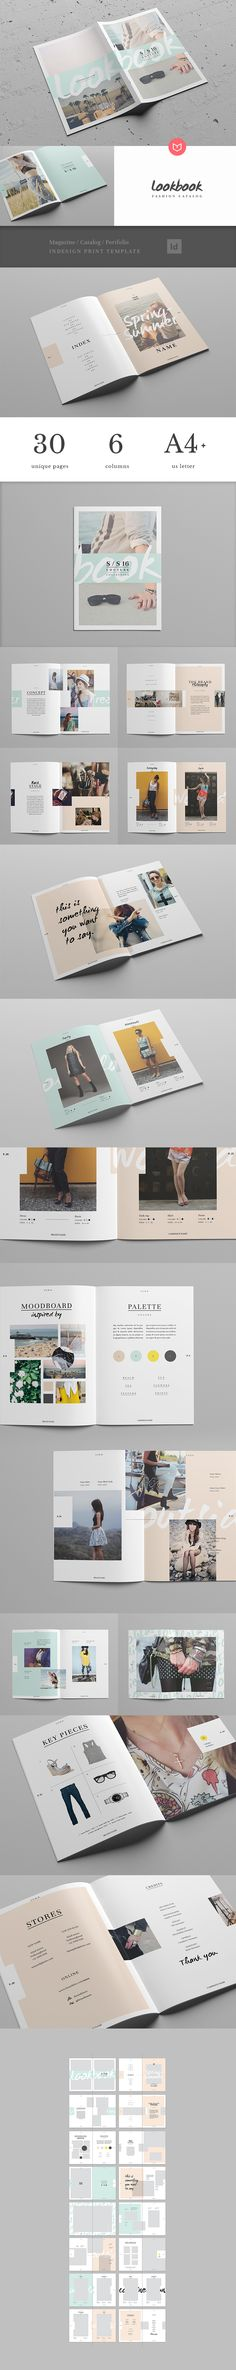 59 new ideas fashion editorial design magazine texts Design Set, Web Design, Graphic Design Layouts, Layout Design, Print Design, Lookbook Layout, Lookbook Design, Design Editorial, Editorial Layout